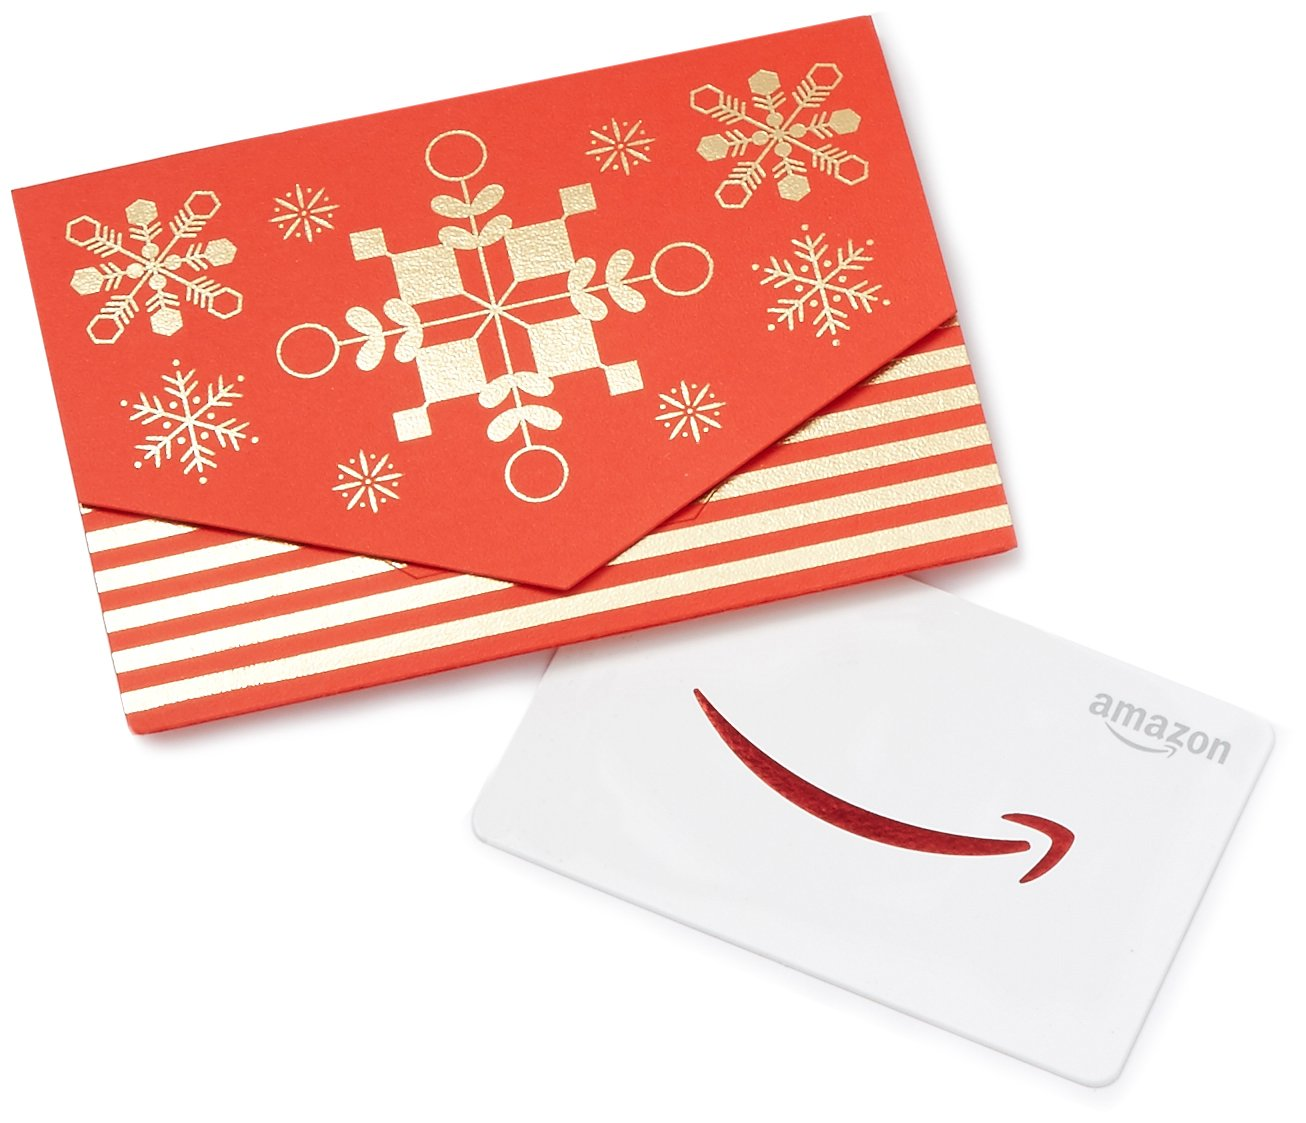 Amazon.ca Gift Card in a Mini Envelope Amazon.com.ca Inc. Fixed